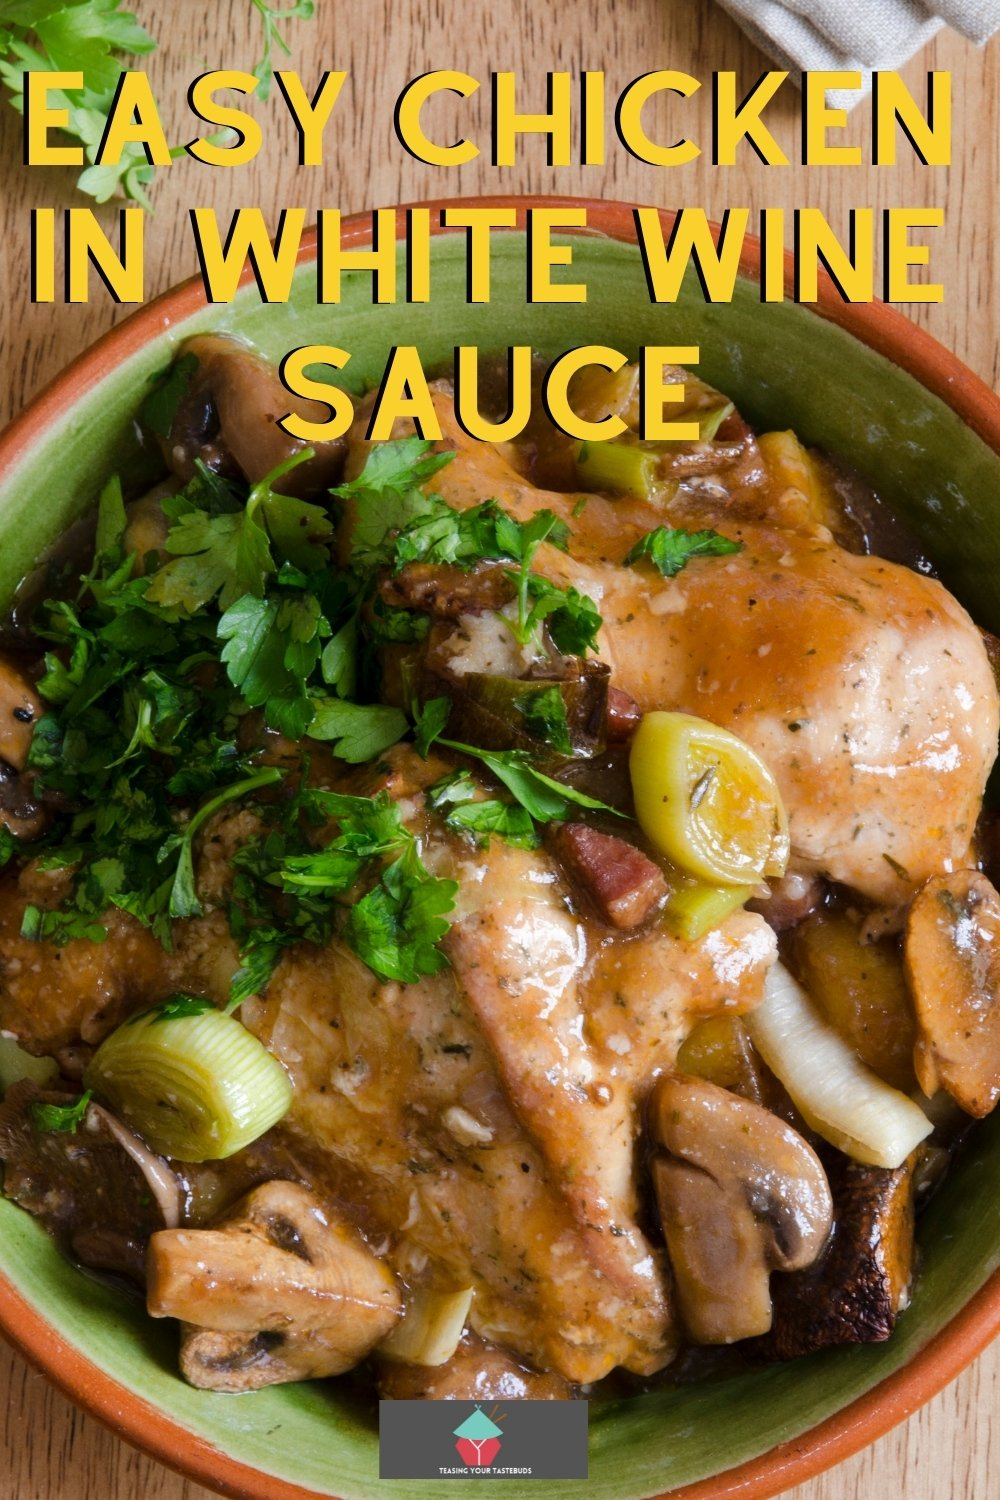 Easy Chicken in White Wine Sauce. Delicious chicken in white wine sauce is an easy dinner recipe, sauteed chicken and mushrooms gently cooked in a full flavored white wine sauce.